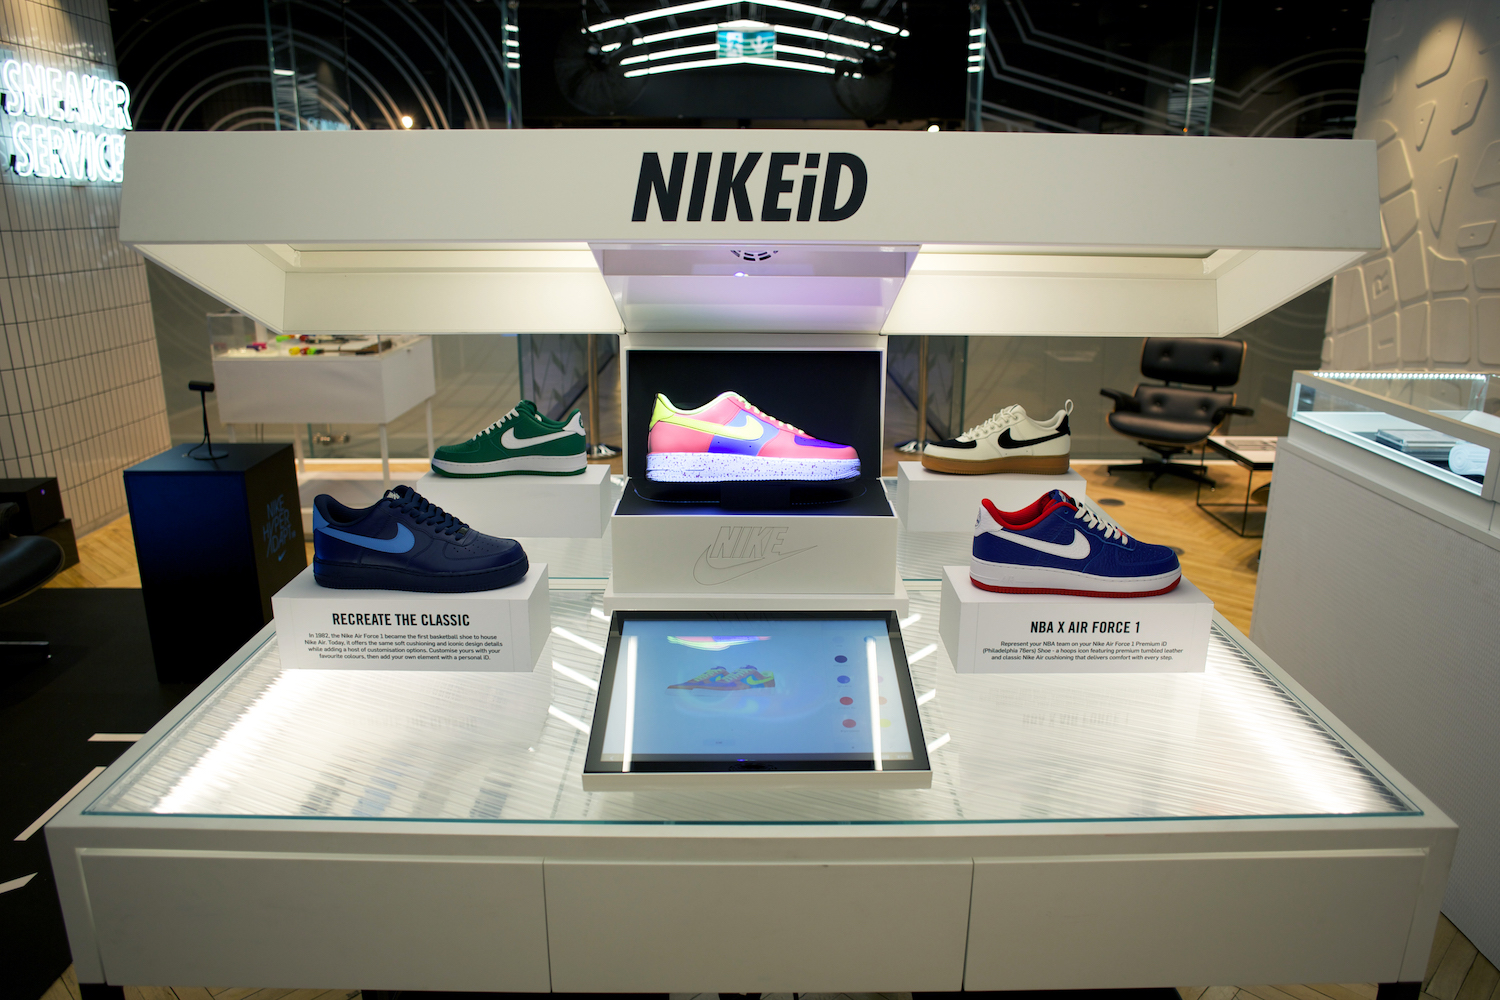 NIKEiD Direct Studio live real-time customization niketown london 6